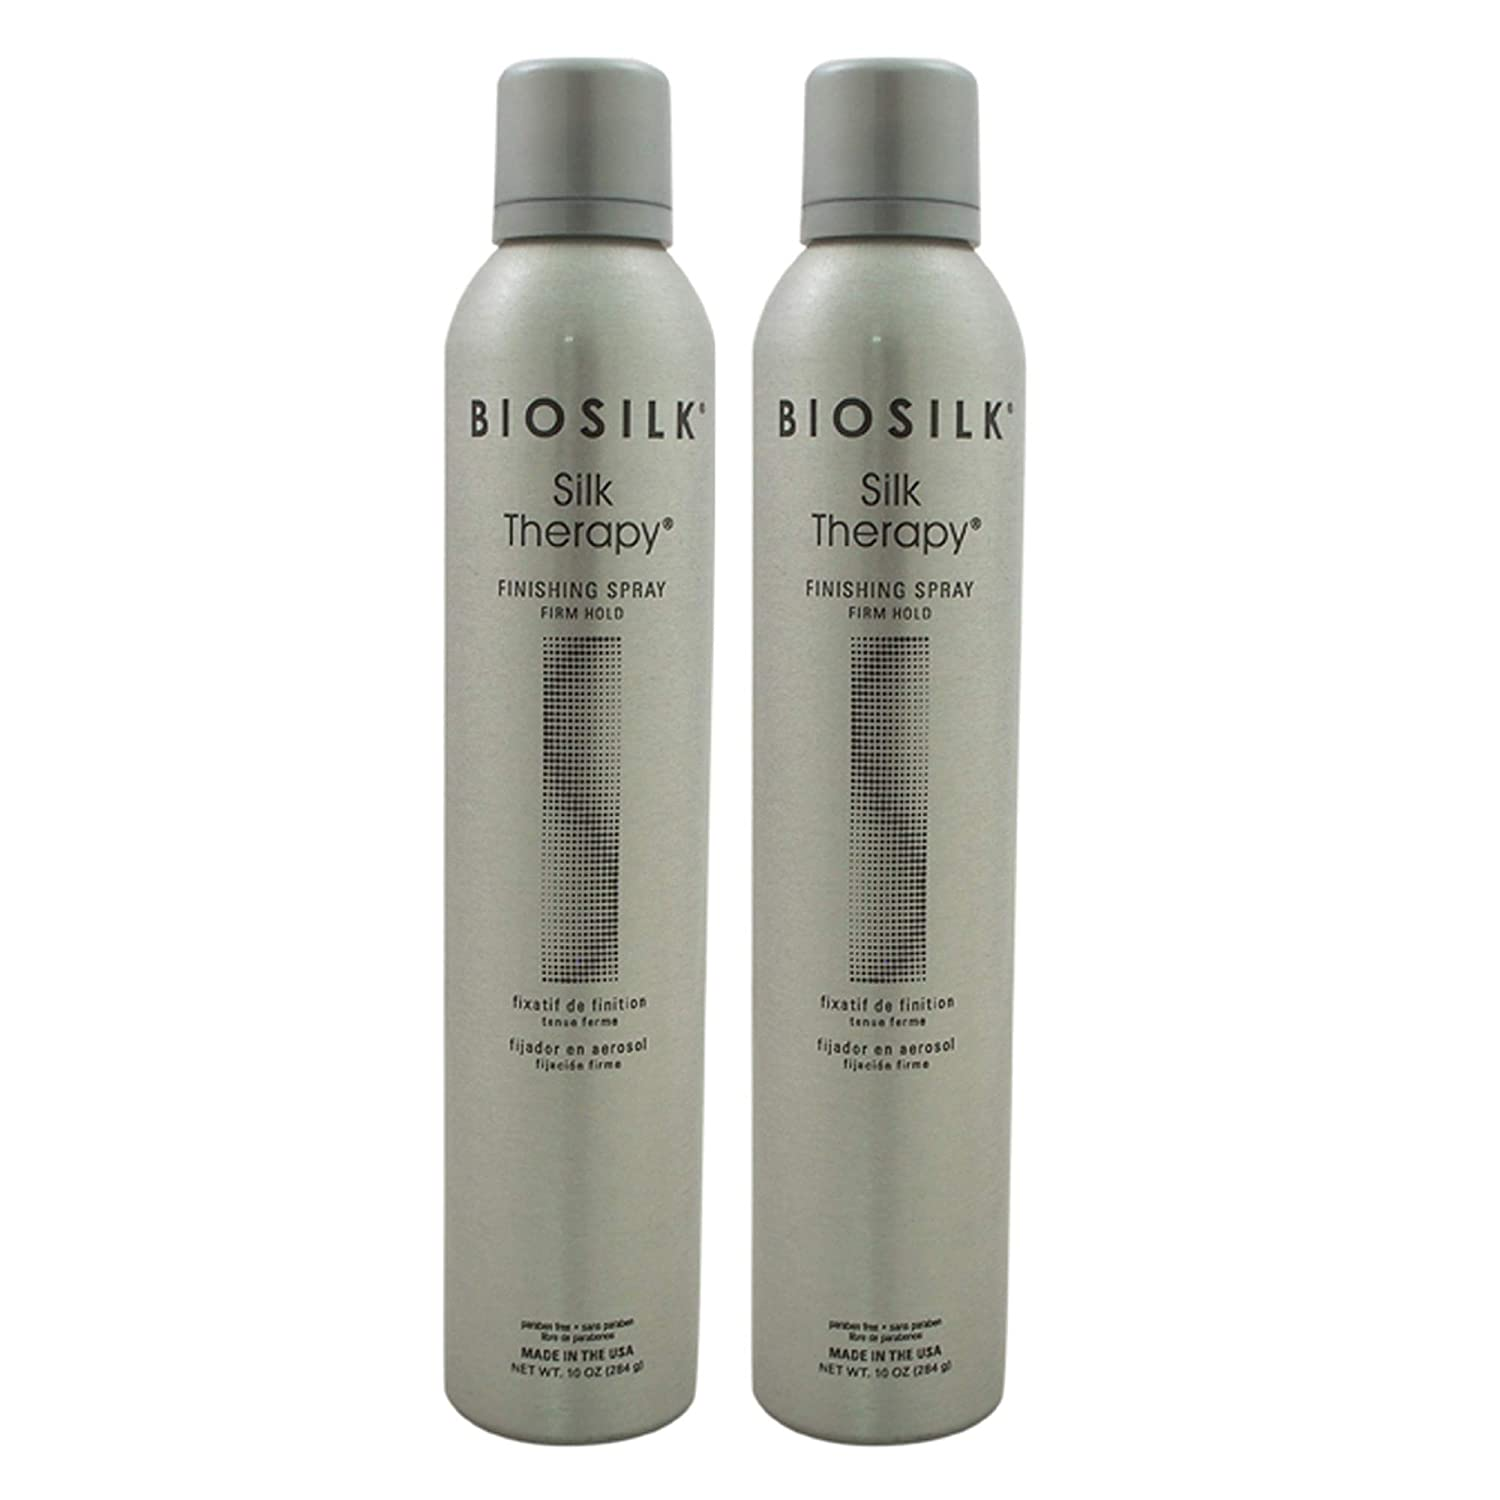 Silk Therapy Finishing Spray Columbus Mall - Firm Hold Unisex for Bargain by Biosilk